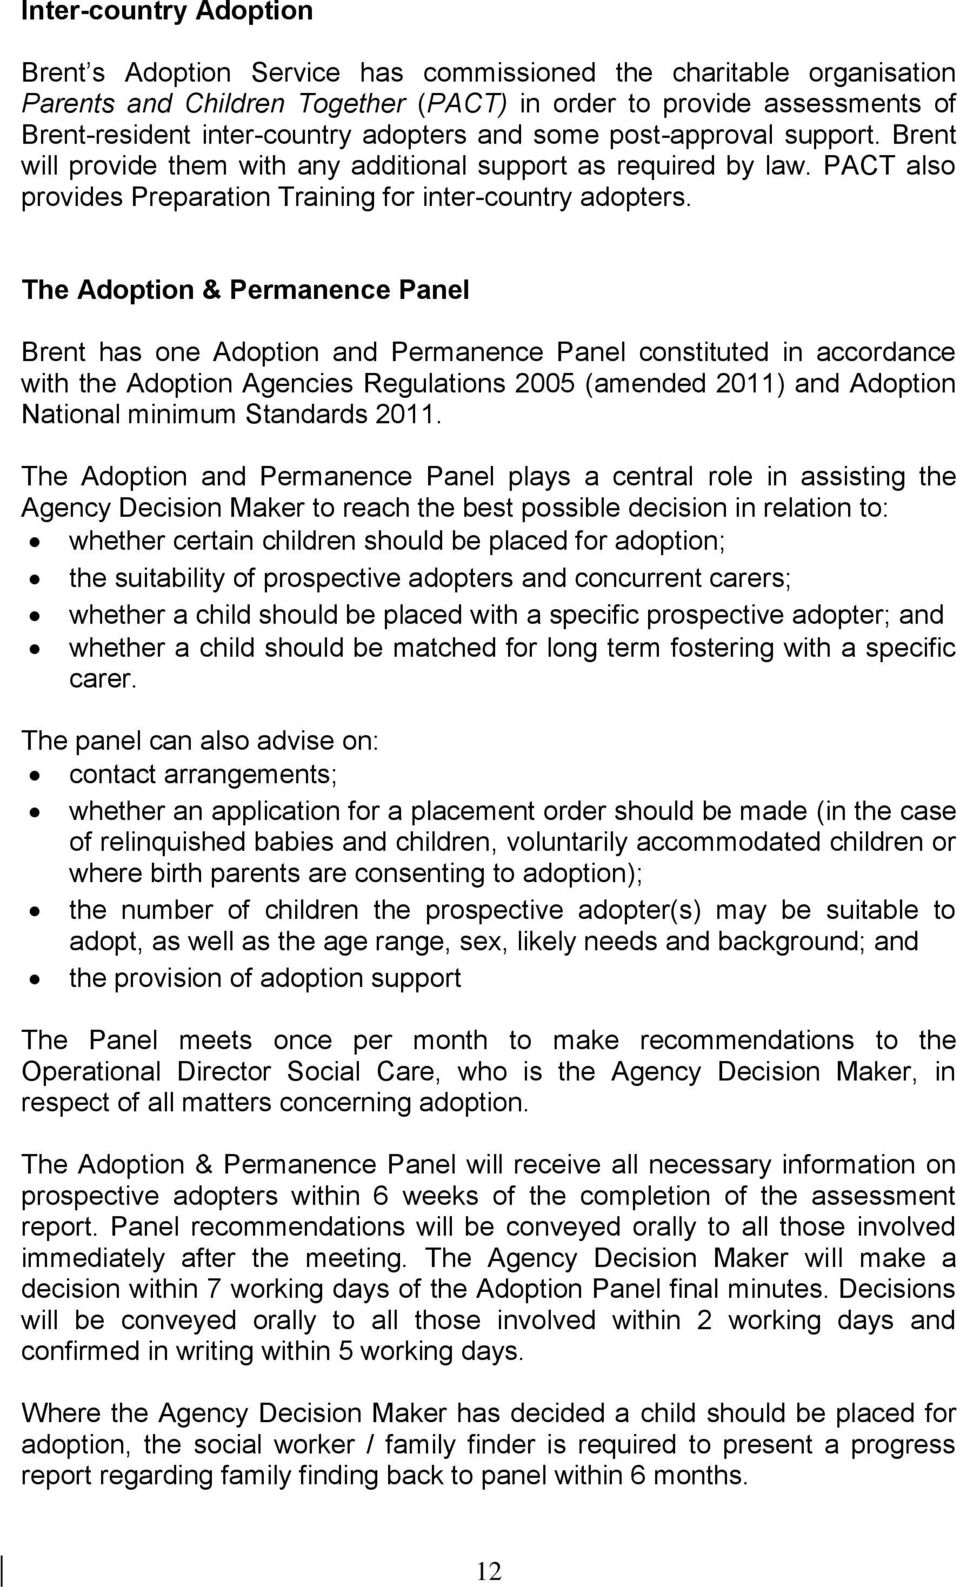 The Adoption & Permanence Panel Brent has one Adoption and Permanence Panel constituted in accordance with the Adoption Agencies Regulations 2005 (amended 2011) and Adoption National minimum